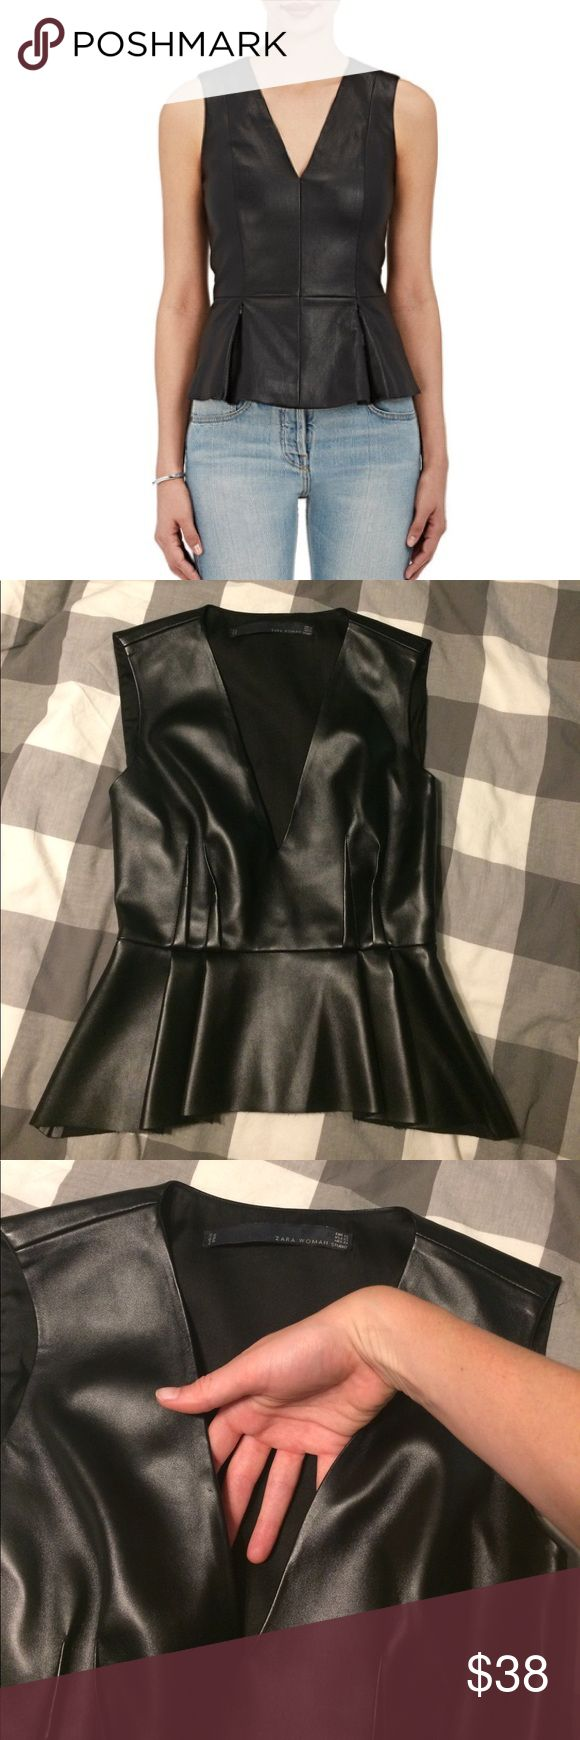 Zara faux leather peplum top size XS v neck Deep v sexy top by Zara women. Pleats in the front and back, zippers up the side. Small scuff at the front by the bust as shown in photo and fraying at the hem. Hardly worn. Zara Tops Tank Tops